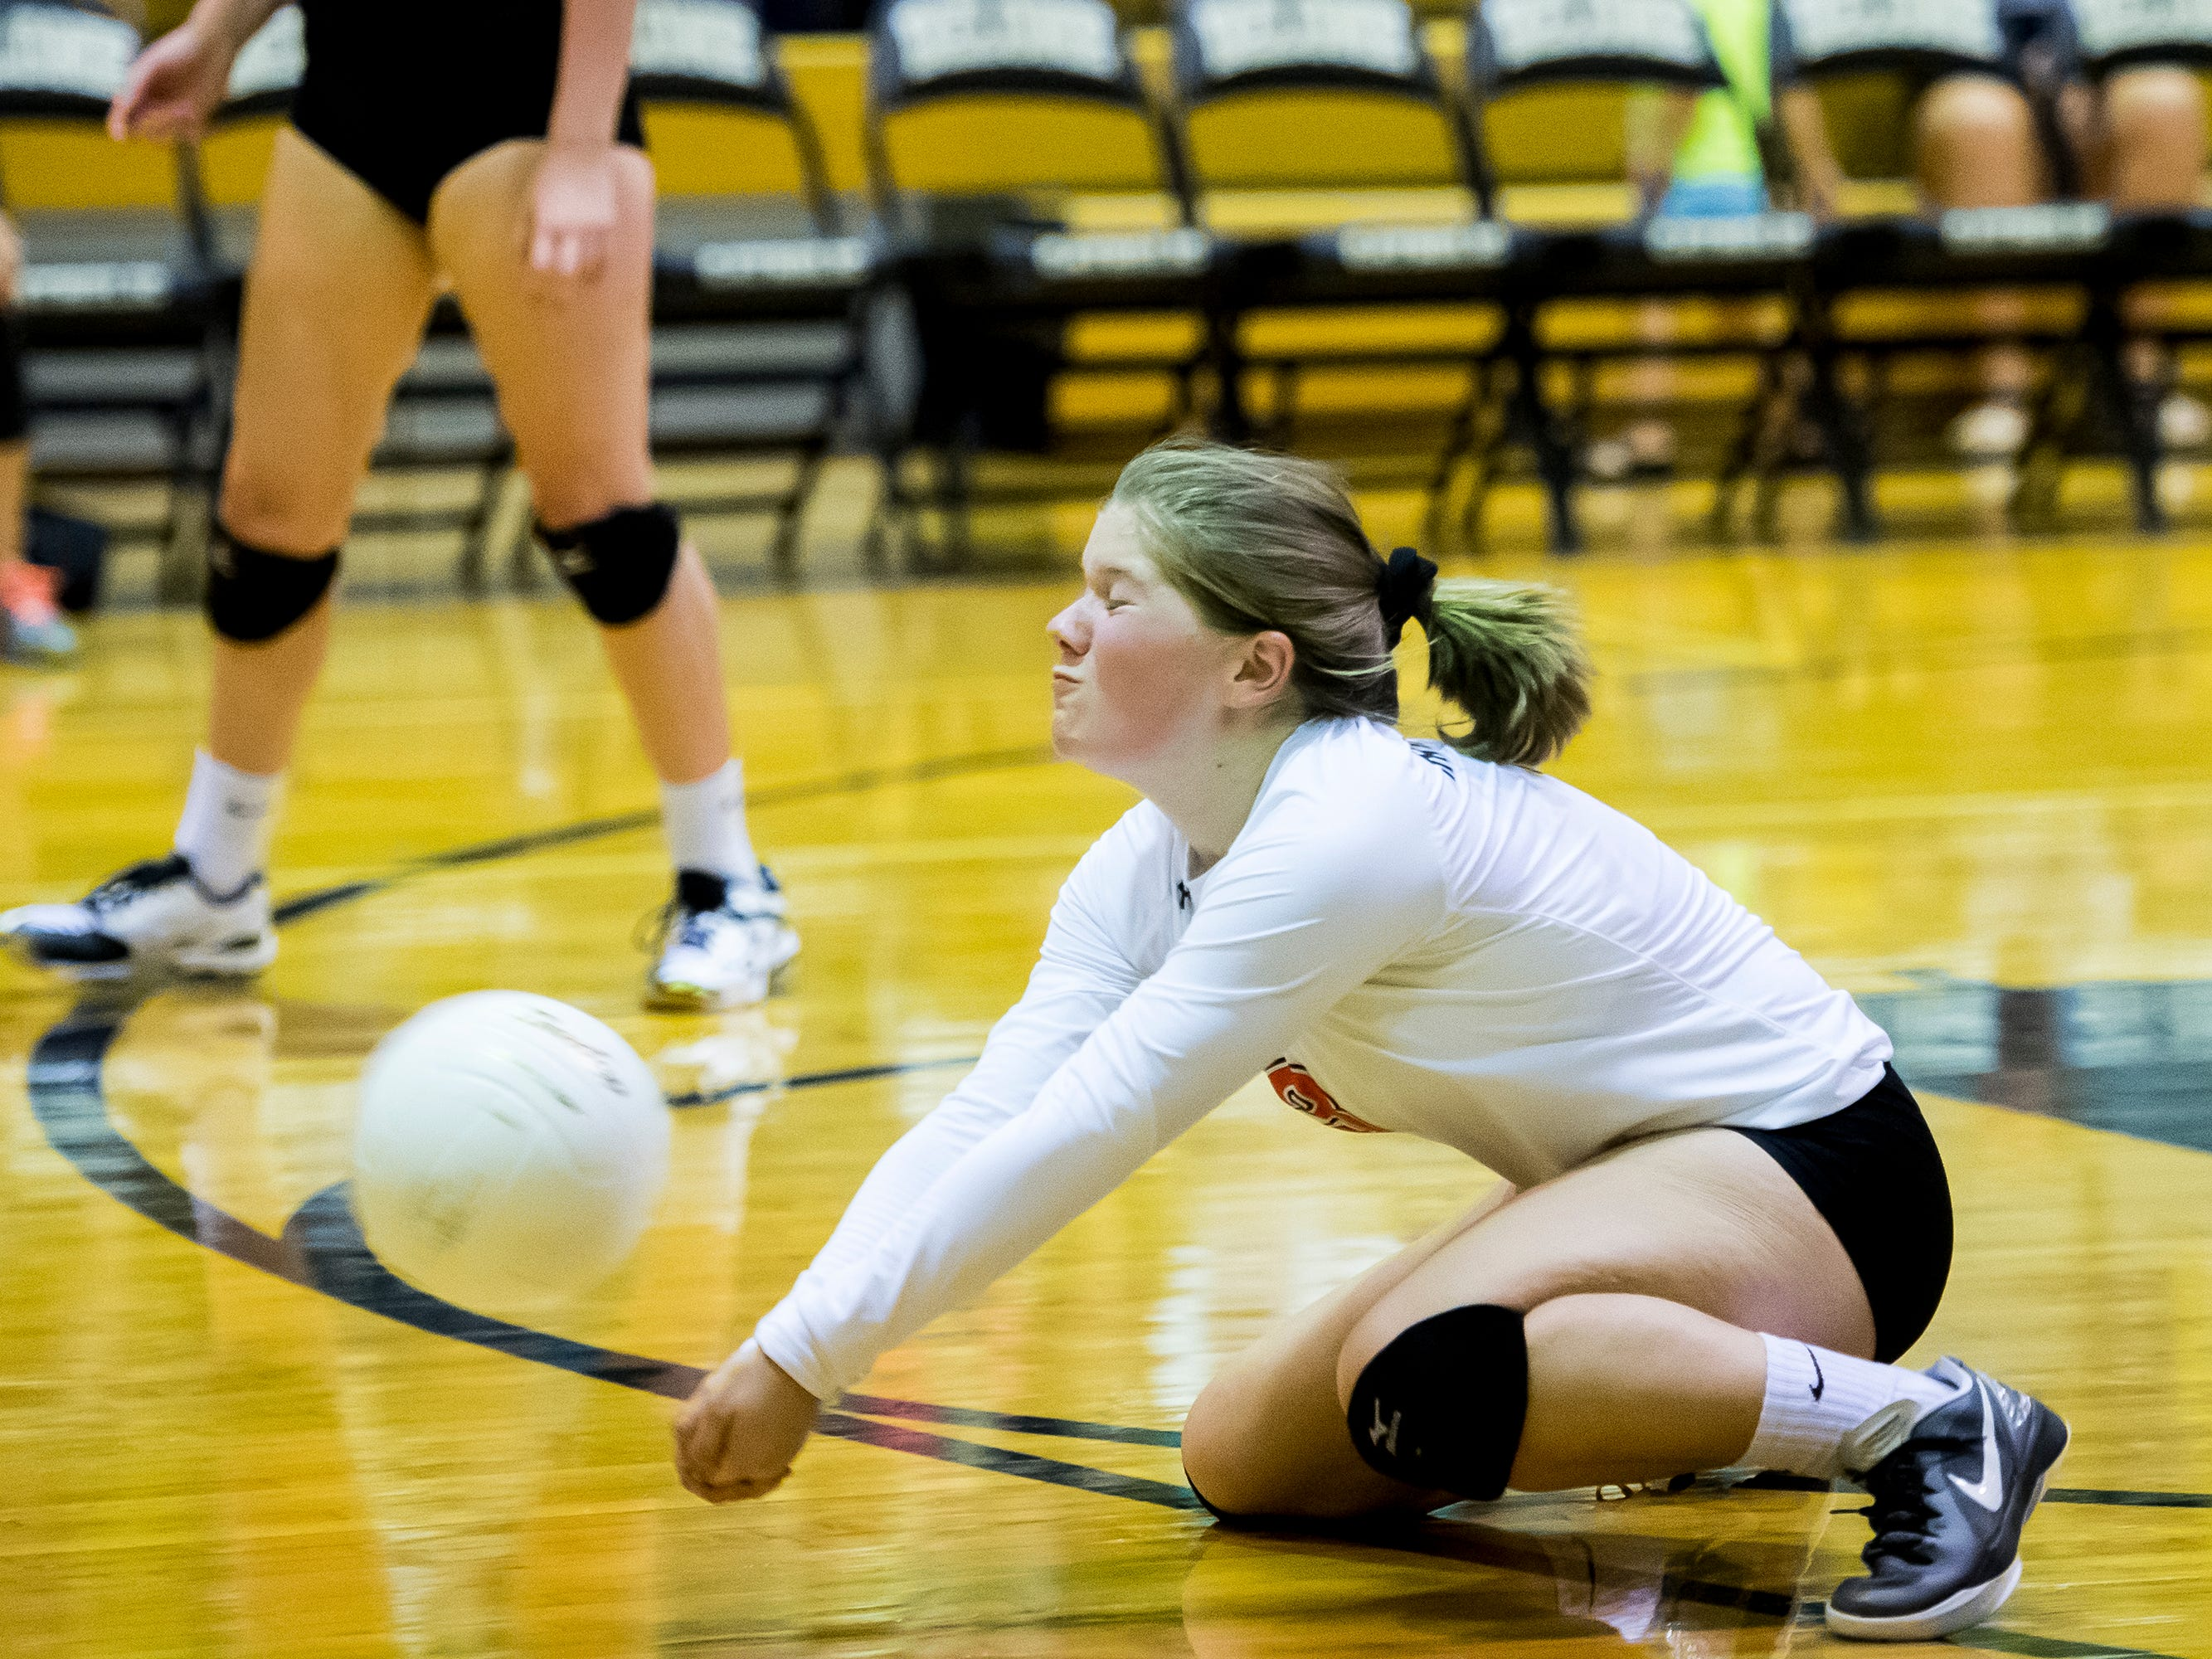 Hanover libero Sierra Stevens makes a dig during play against Delone Catholic on Tuesday, September 18, 2018. The Hawkettes fell in three straight sets;  25-16, 25-19, 25-14.